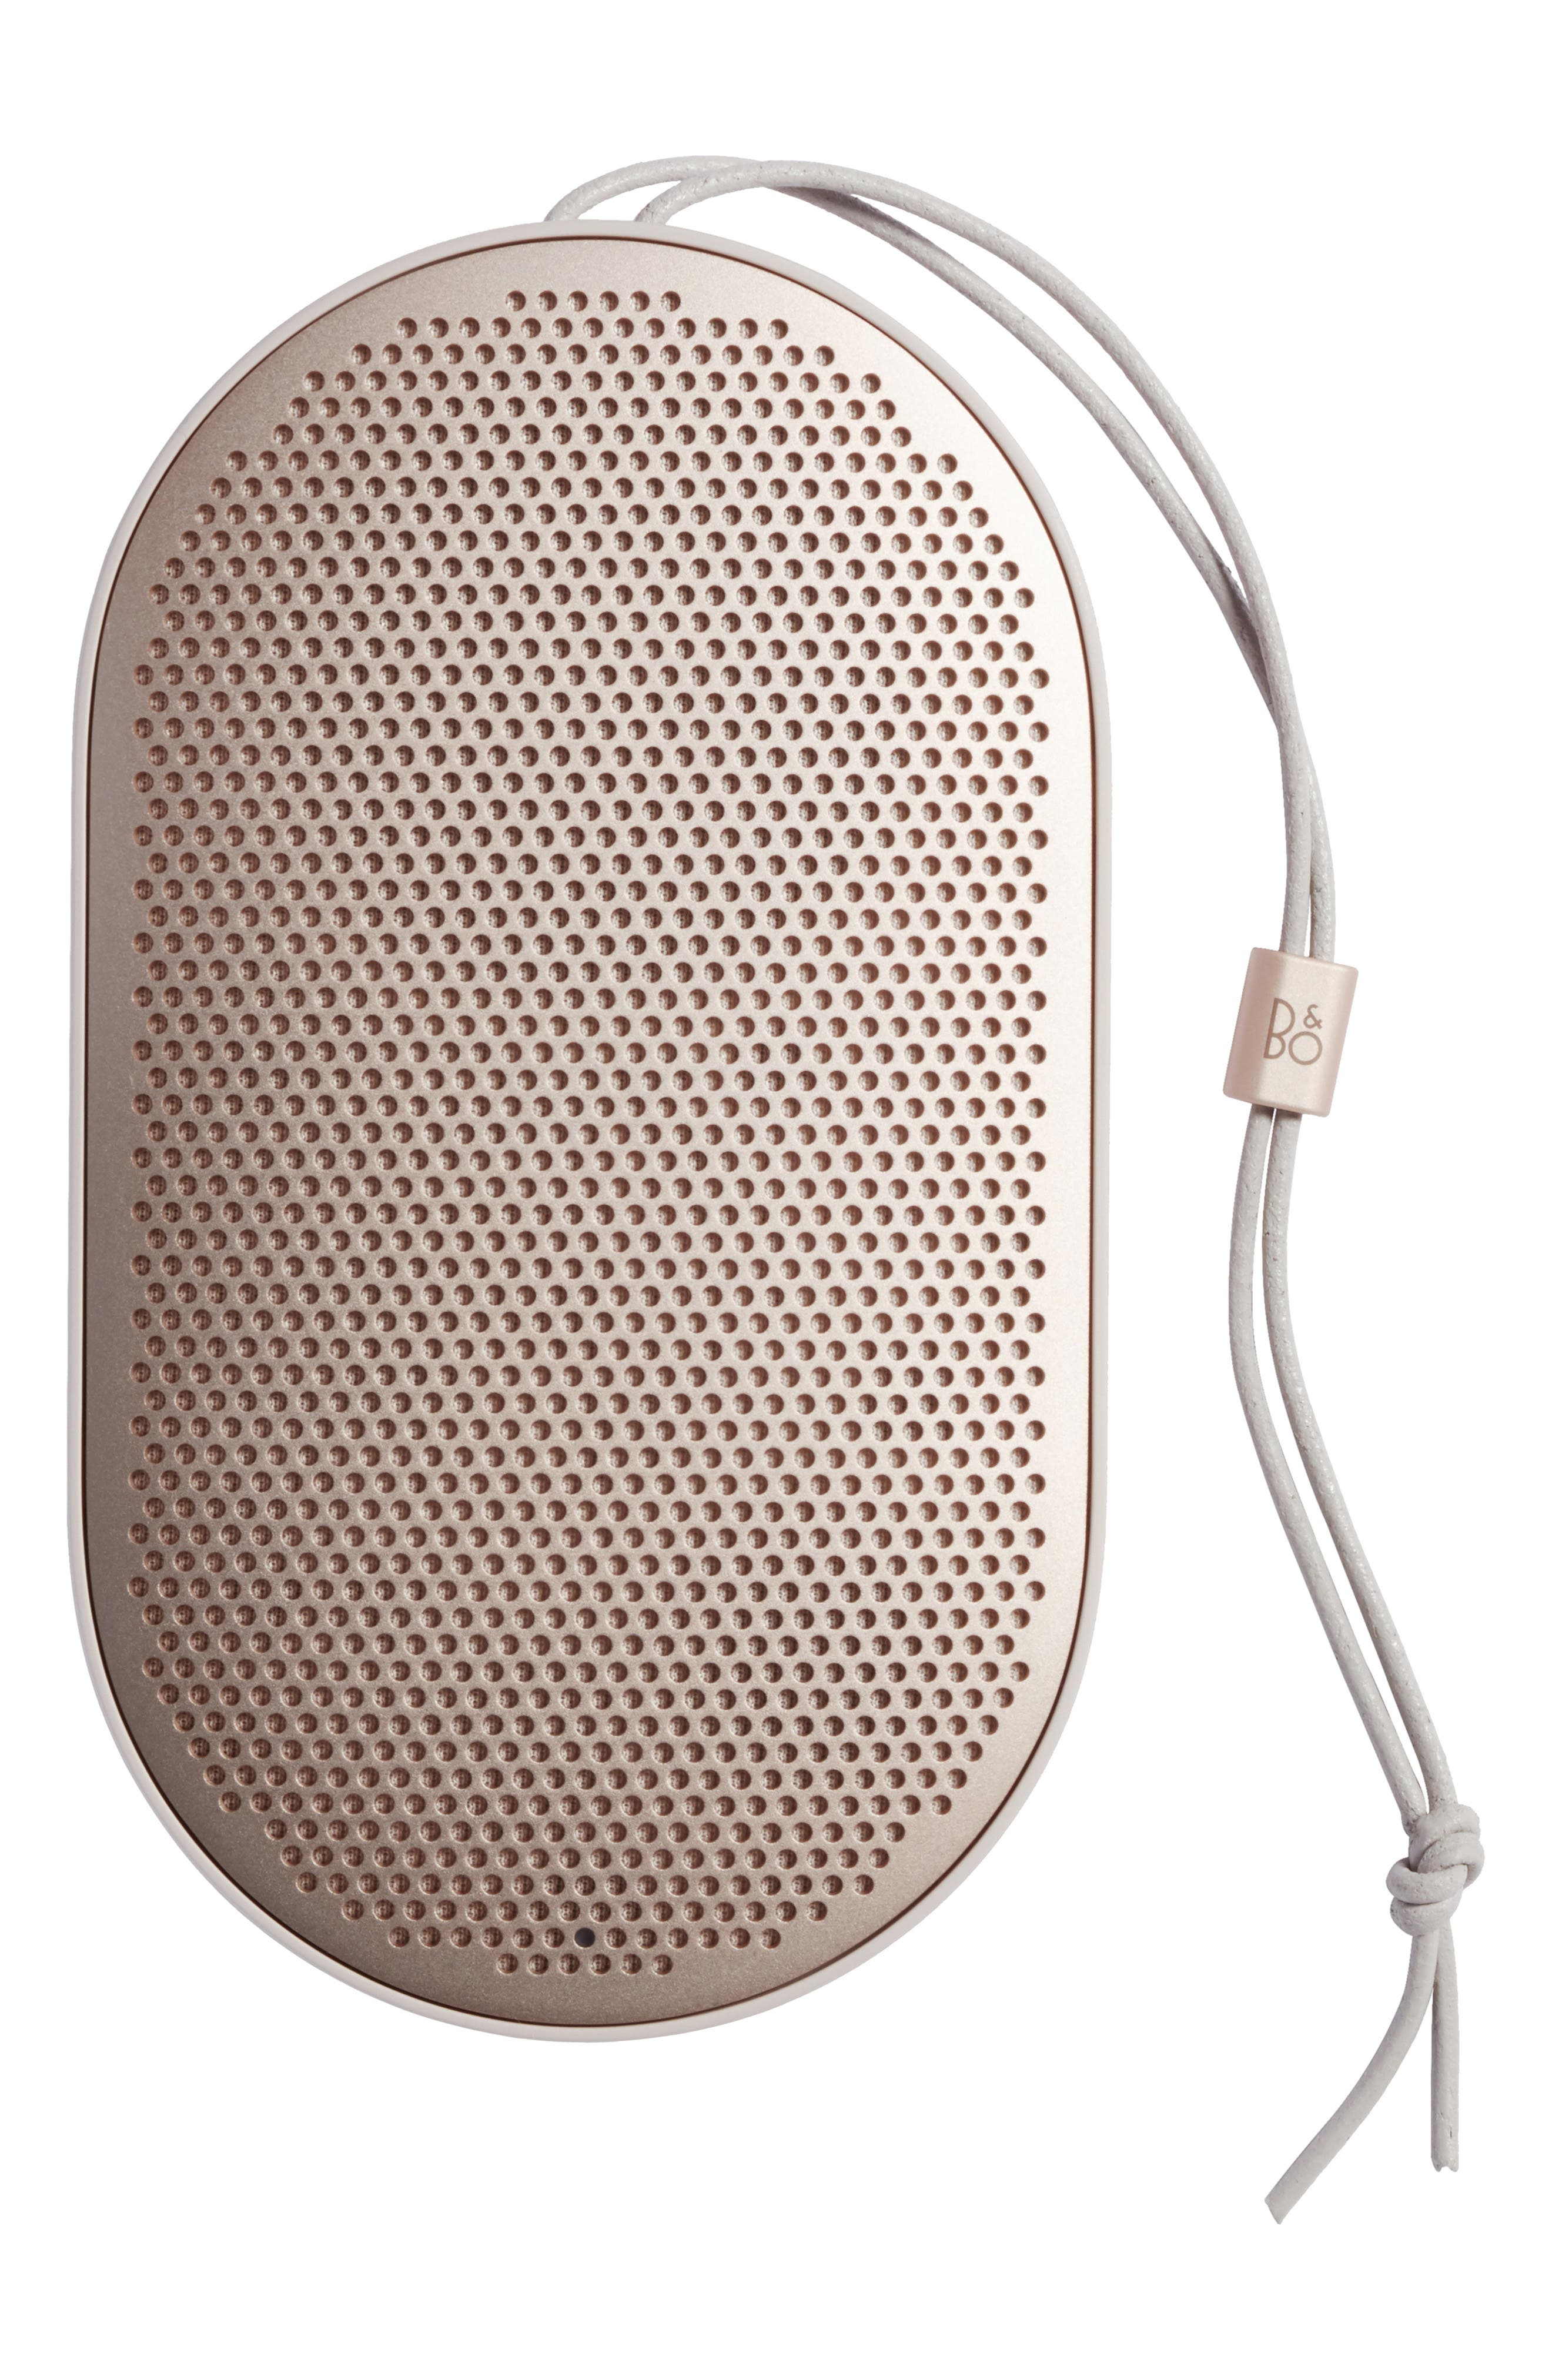 Alternate Image 1 Selected - B&O PLAY Beoplay P2 Portable Bluetooth® Speaker